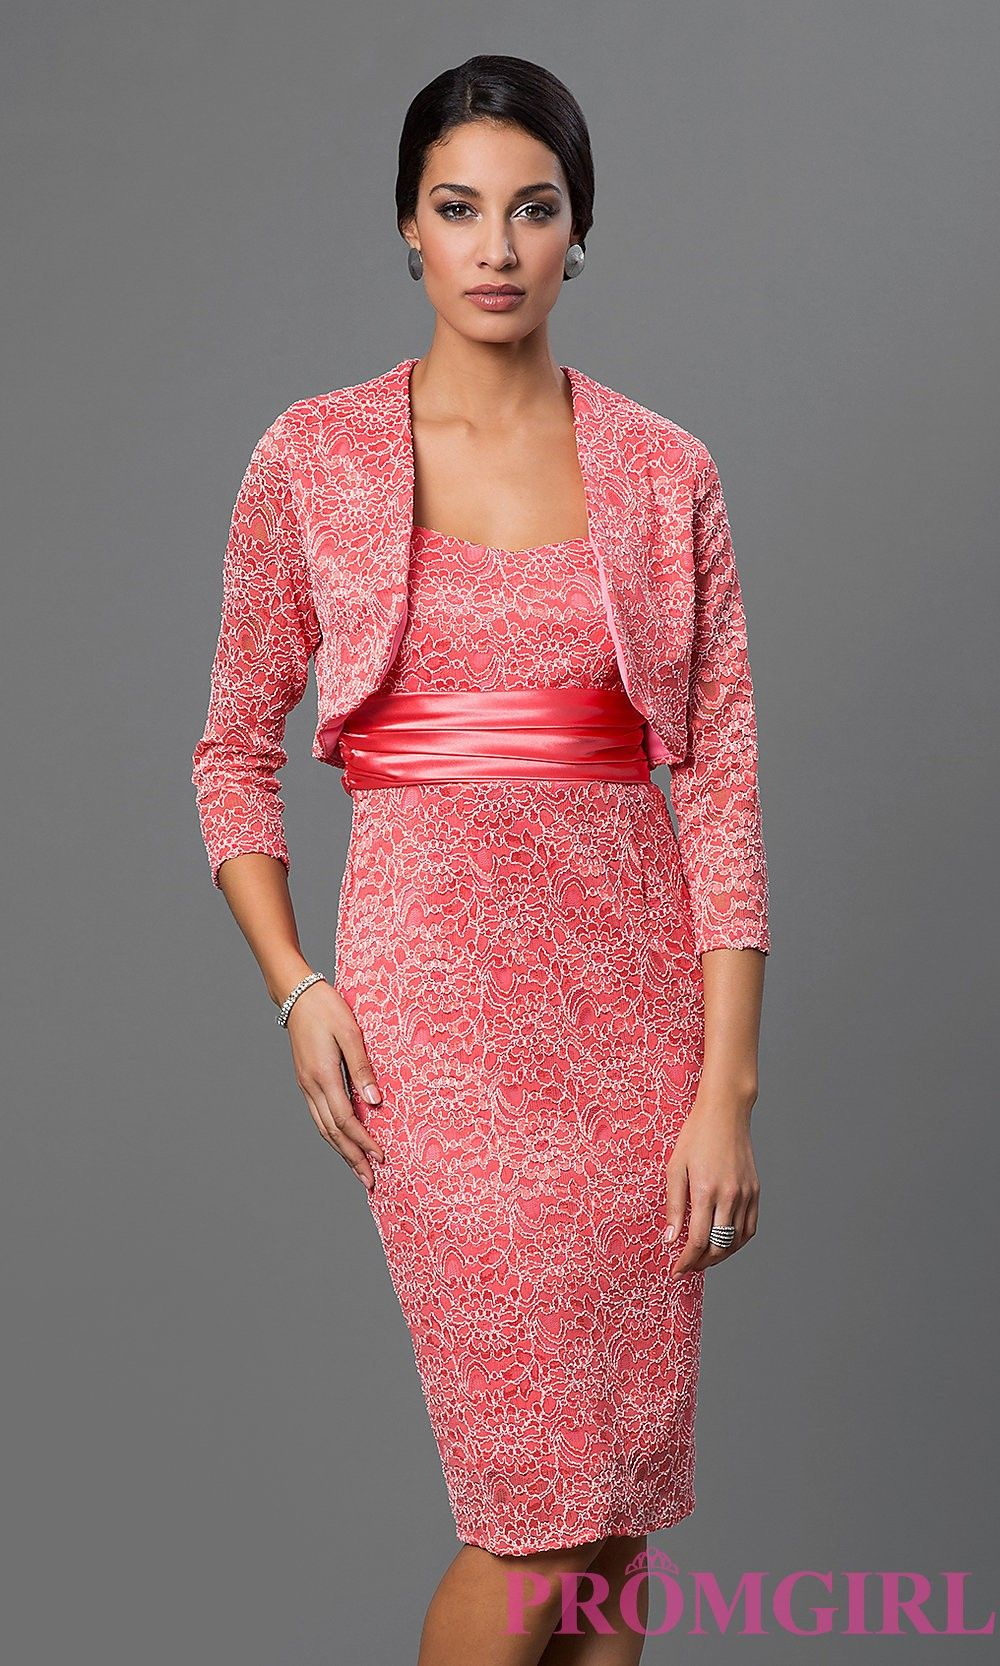 Lace Short Cocktail Dress with Bolero Jacket by Sally Fashion ...